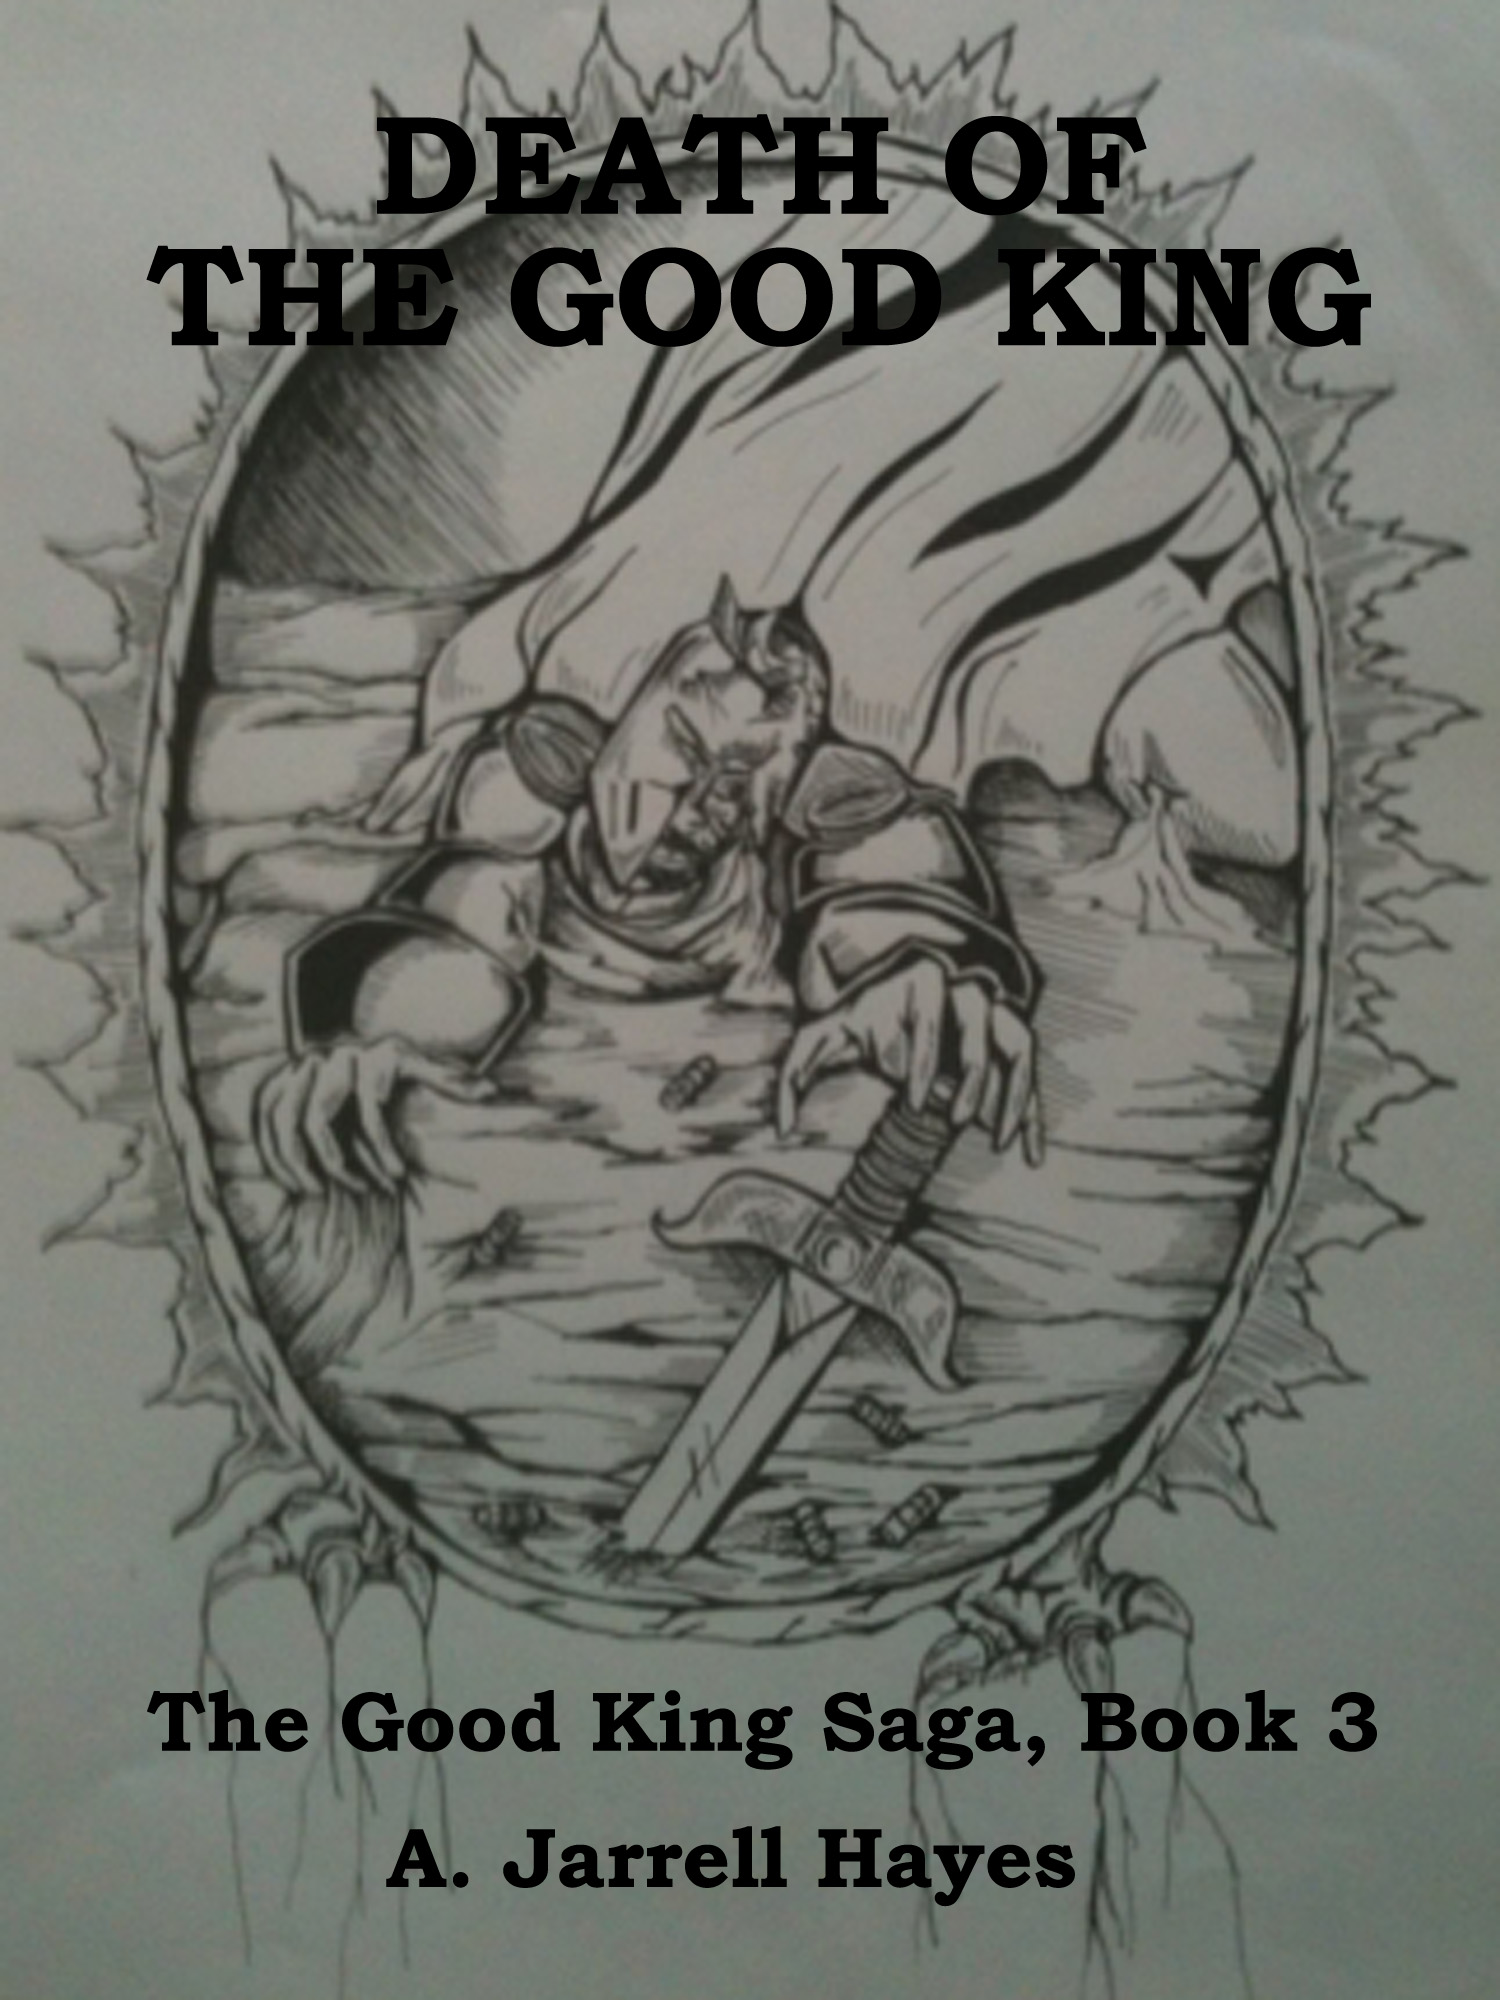 Death of the Good King by A. Jarrell Hayes